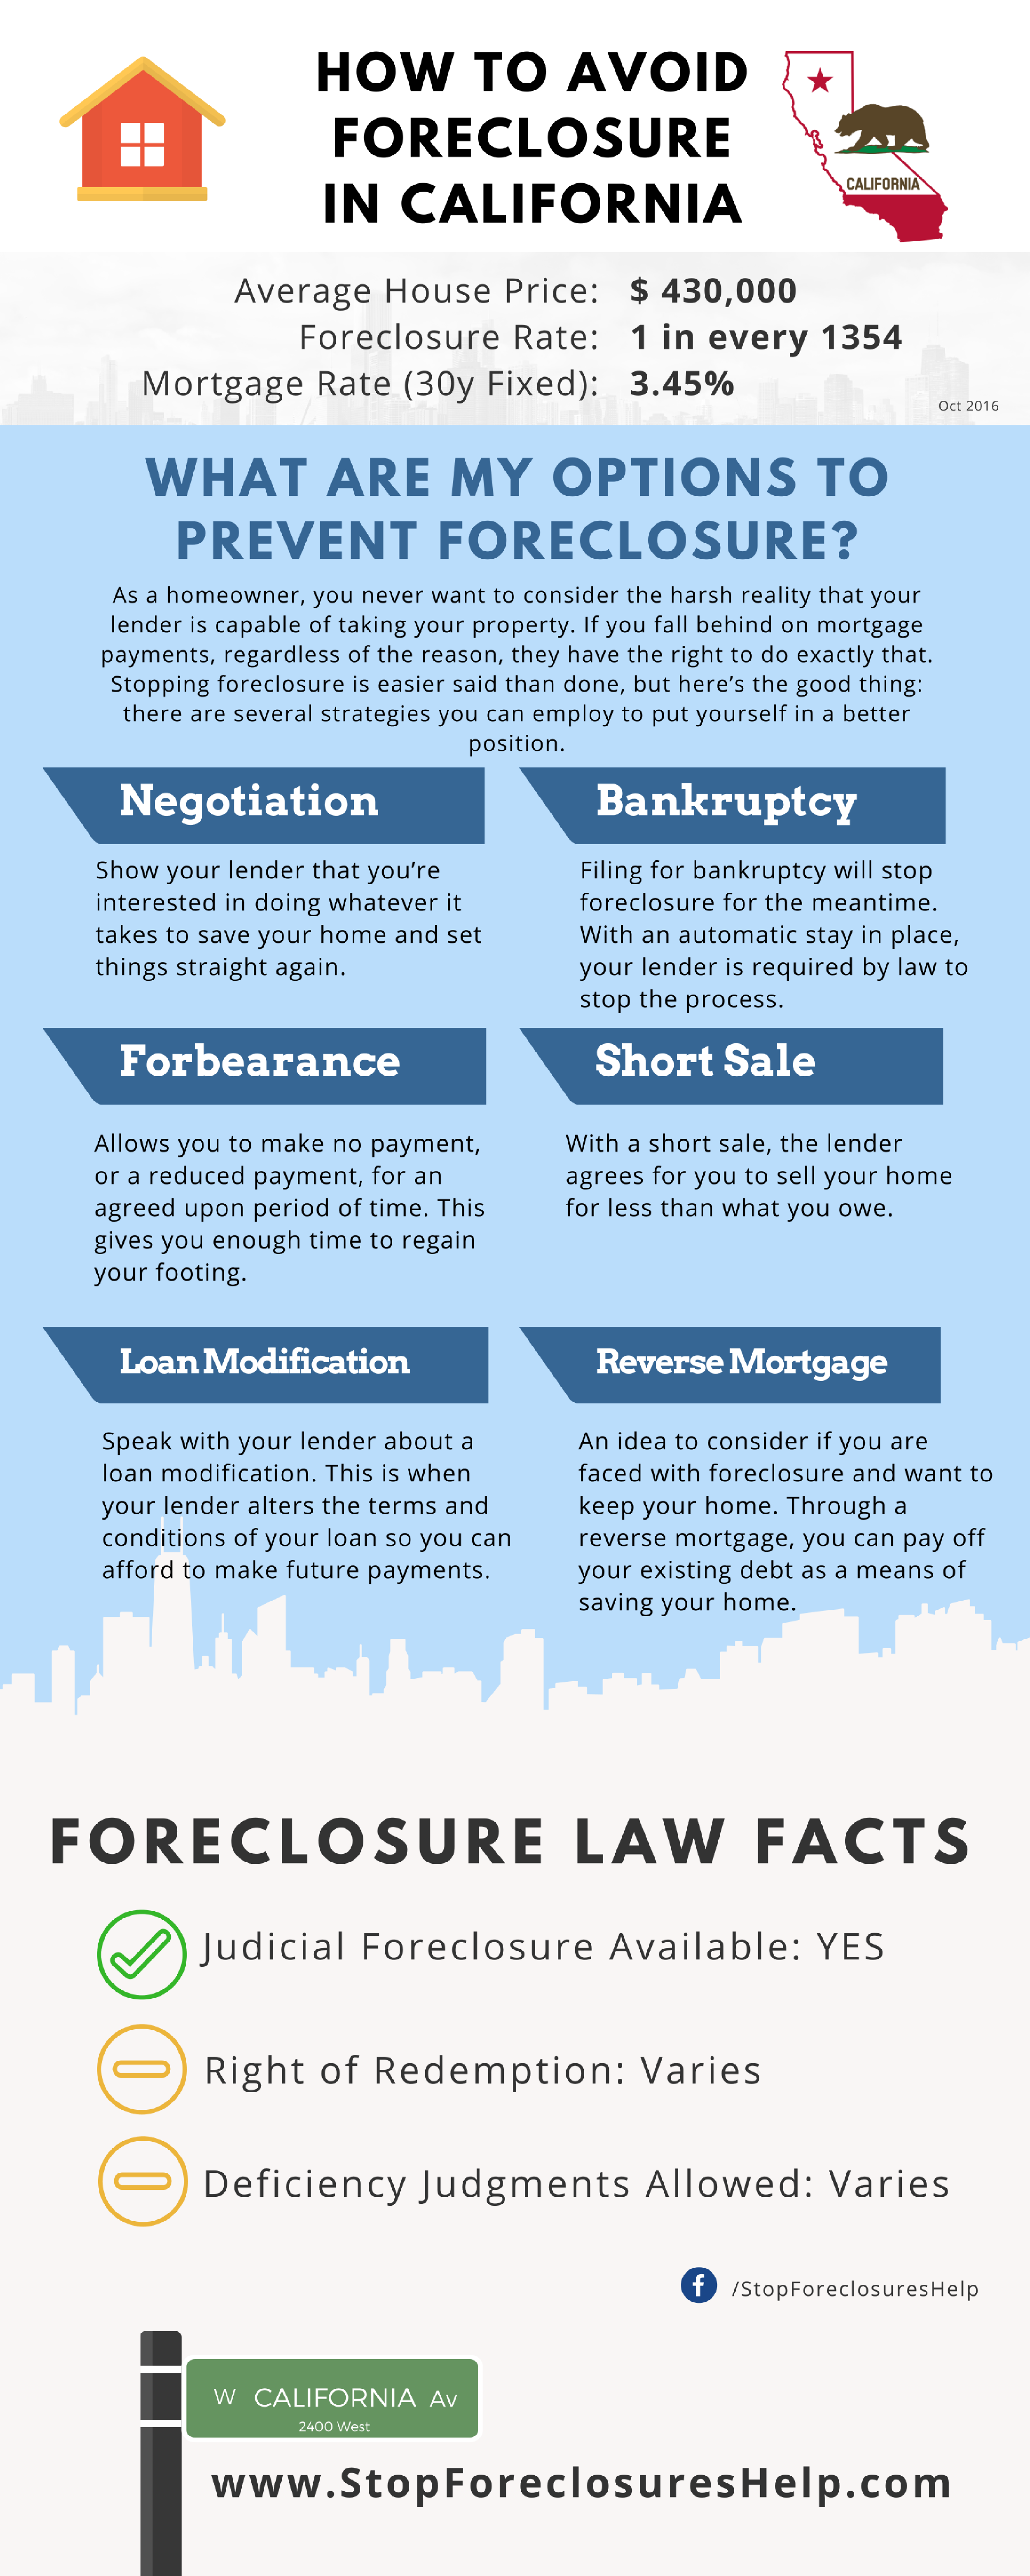 Infographic in how to Avoid Foreclosure in California